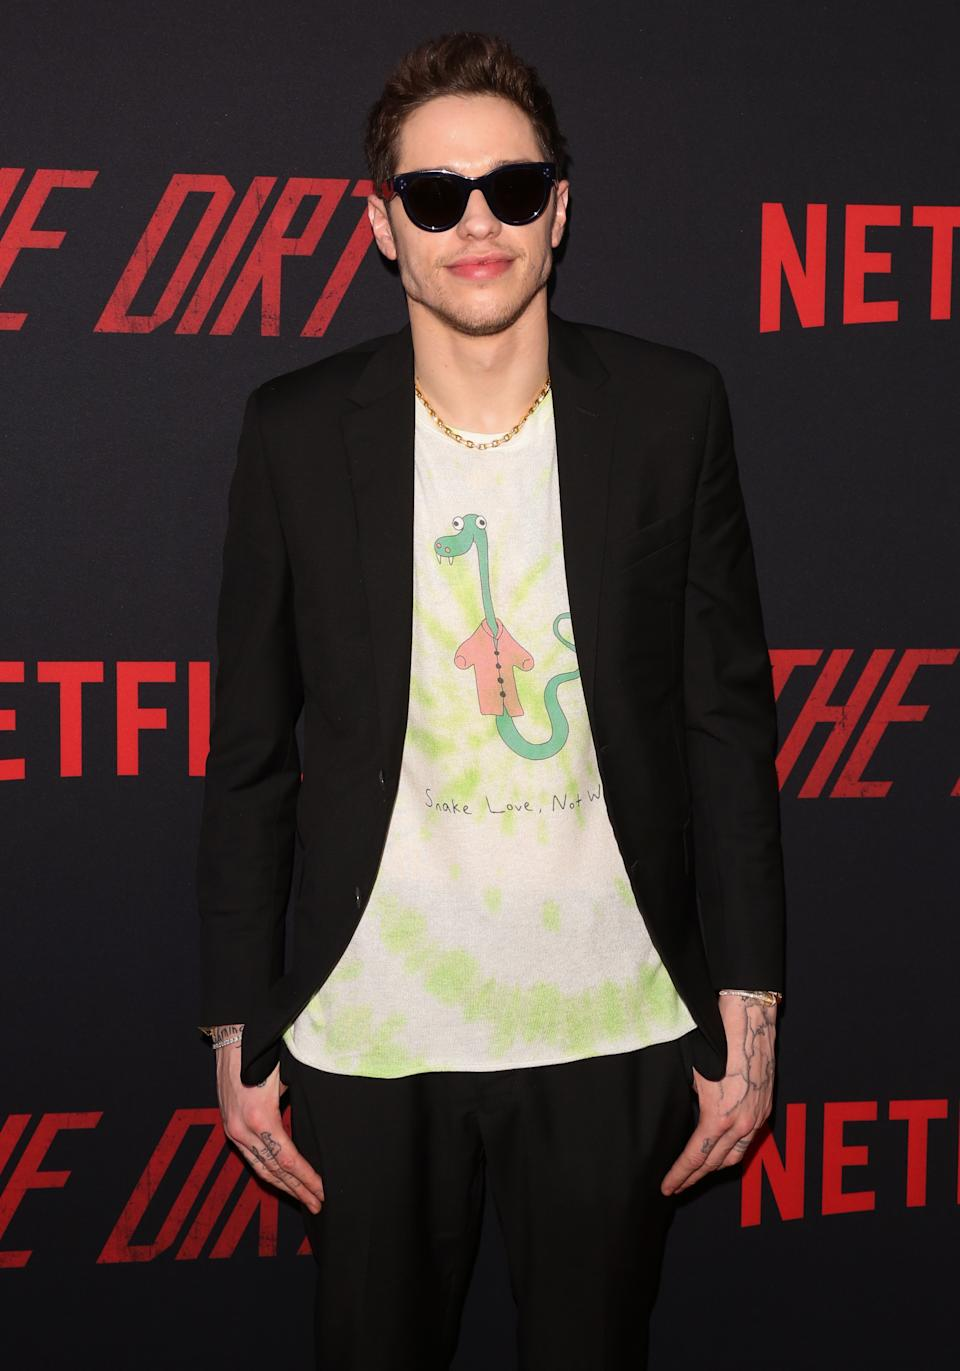 """Actor Pete Davidson attends the Premiere Of Netflix's """"The Dirt"""" at ArcLight Hollywood on March 18, 2019 in Hollywood, California. (Photo by Paul Archuleta/FilmMagic)"""